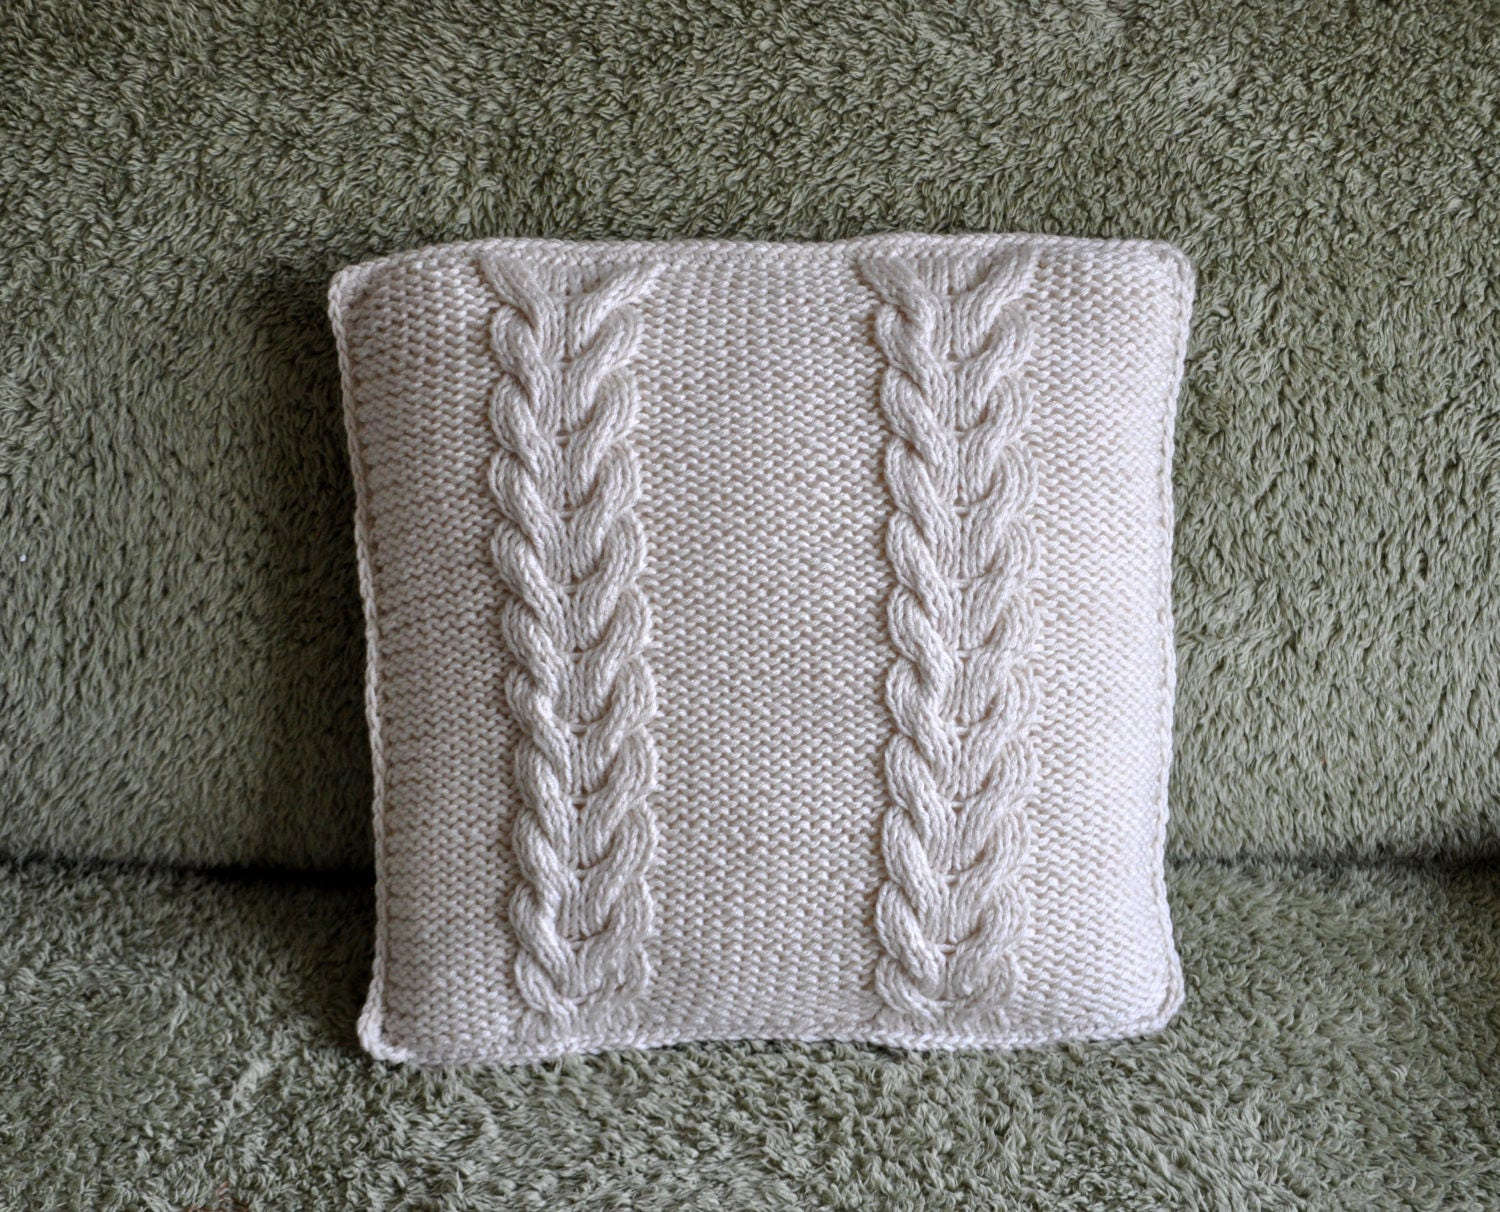 Christmas gift cream cable hand knitted cushion cover aran yarn christmas gift cream cable hand knitted cushion cover aran yarn handmade cushion cream decorative sofa pillow handmade in london uk bankloansurffo Gallery